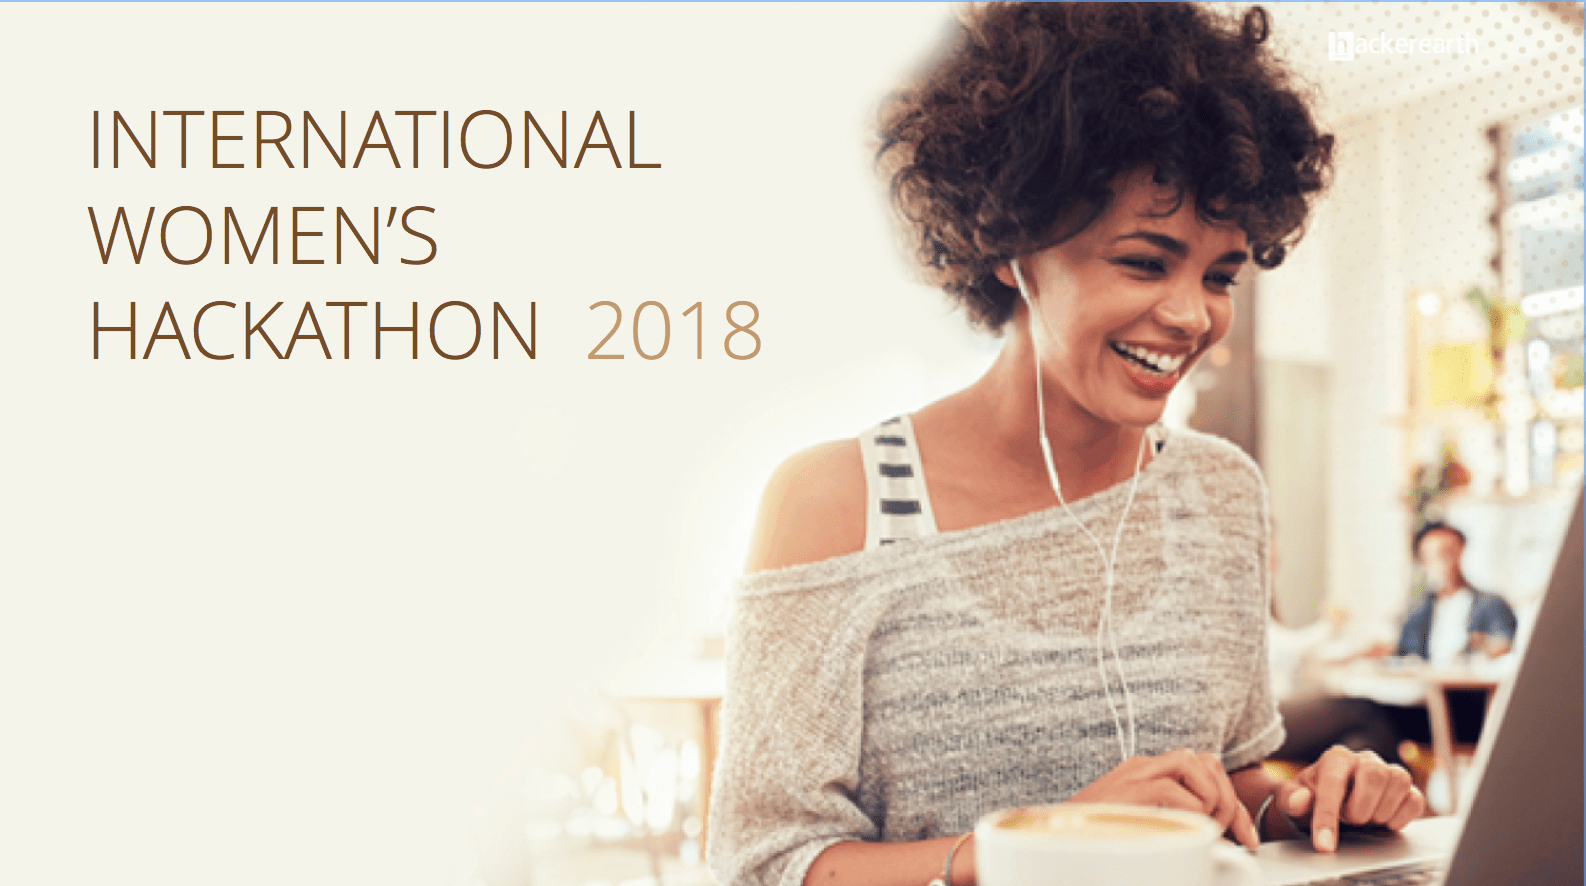 Register for International Women's Hackathon 2018